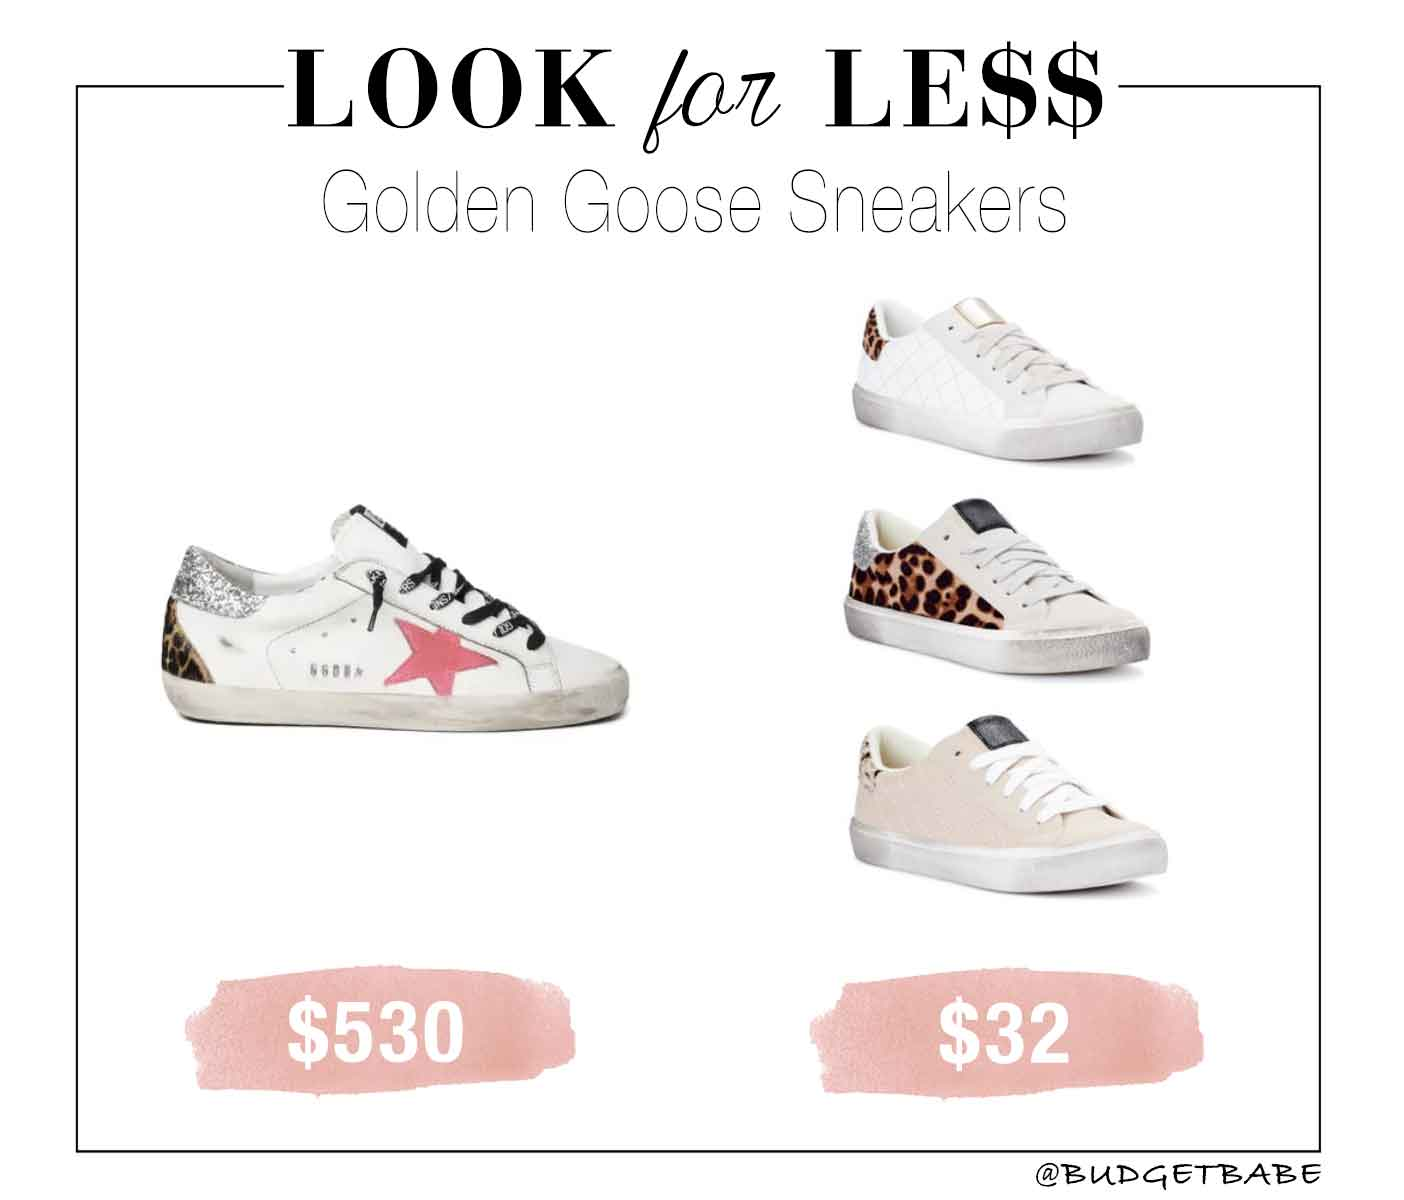 Golden Goose sneakers look for less